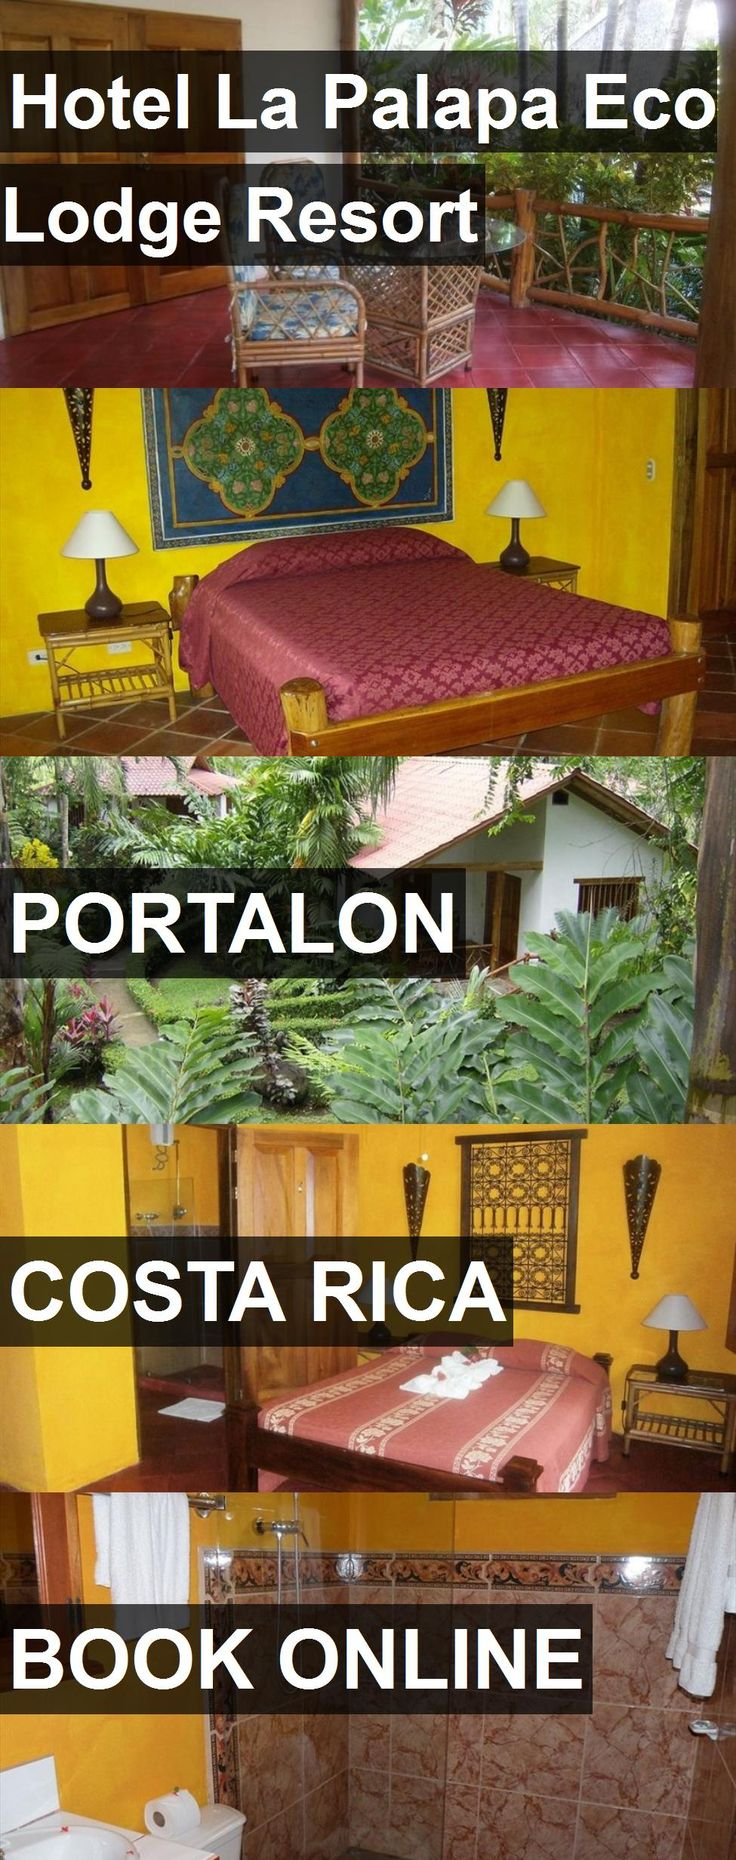 Hotel Hotel La Palapa Eco Lodge Resort in Portalon, Costa Rica. For more information, photos, reviews and best prices please follow the link. #CostaRica #Portalon #hotel #travel #vacation